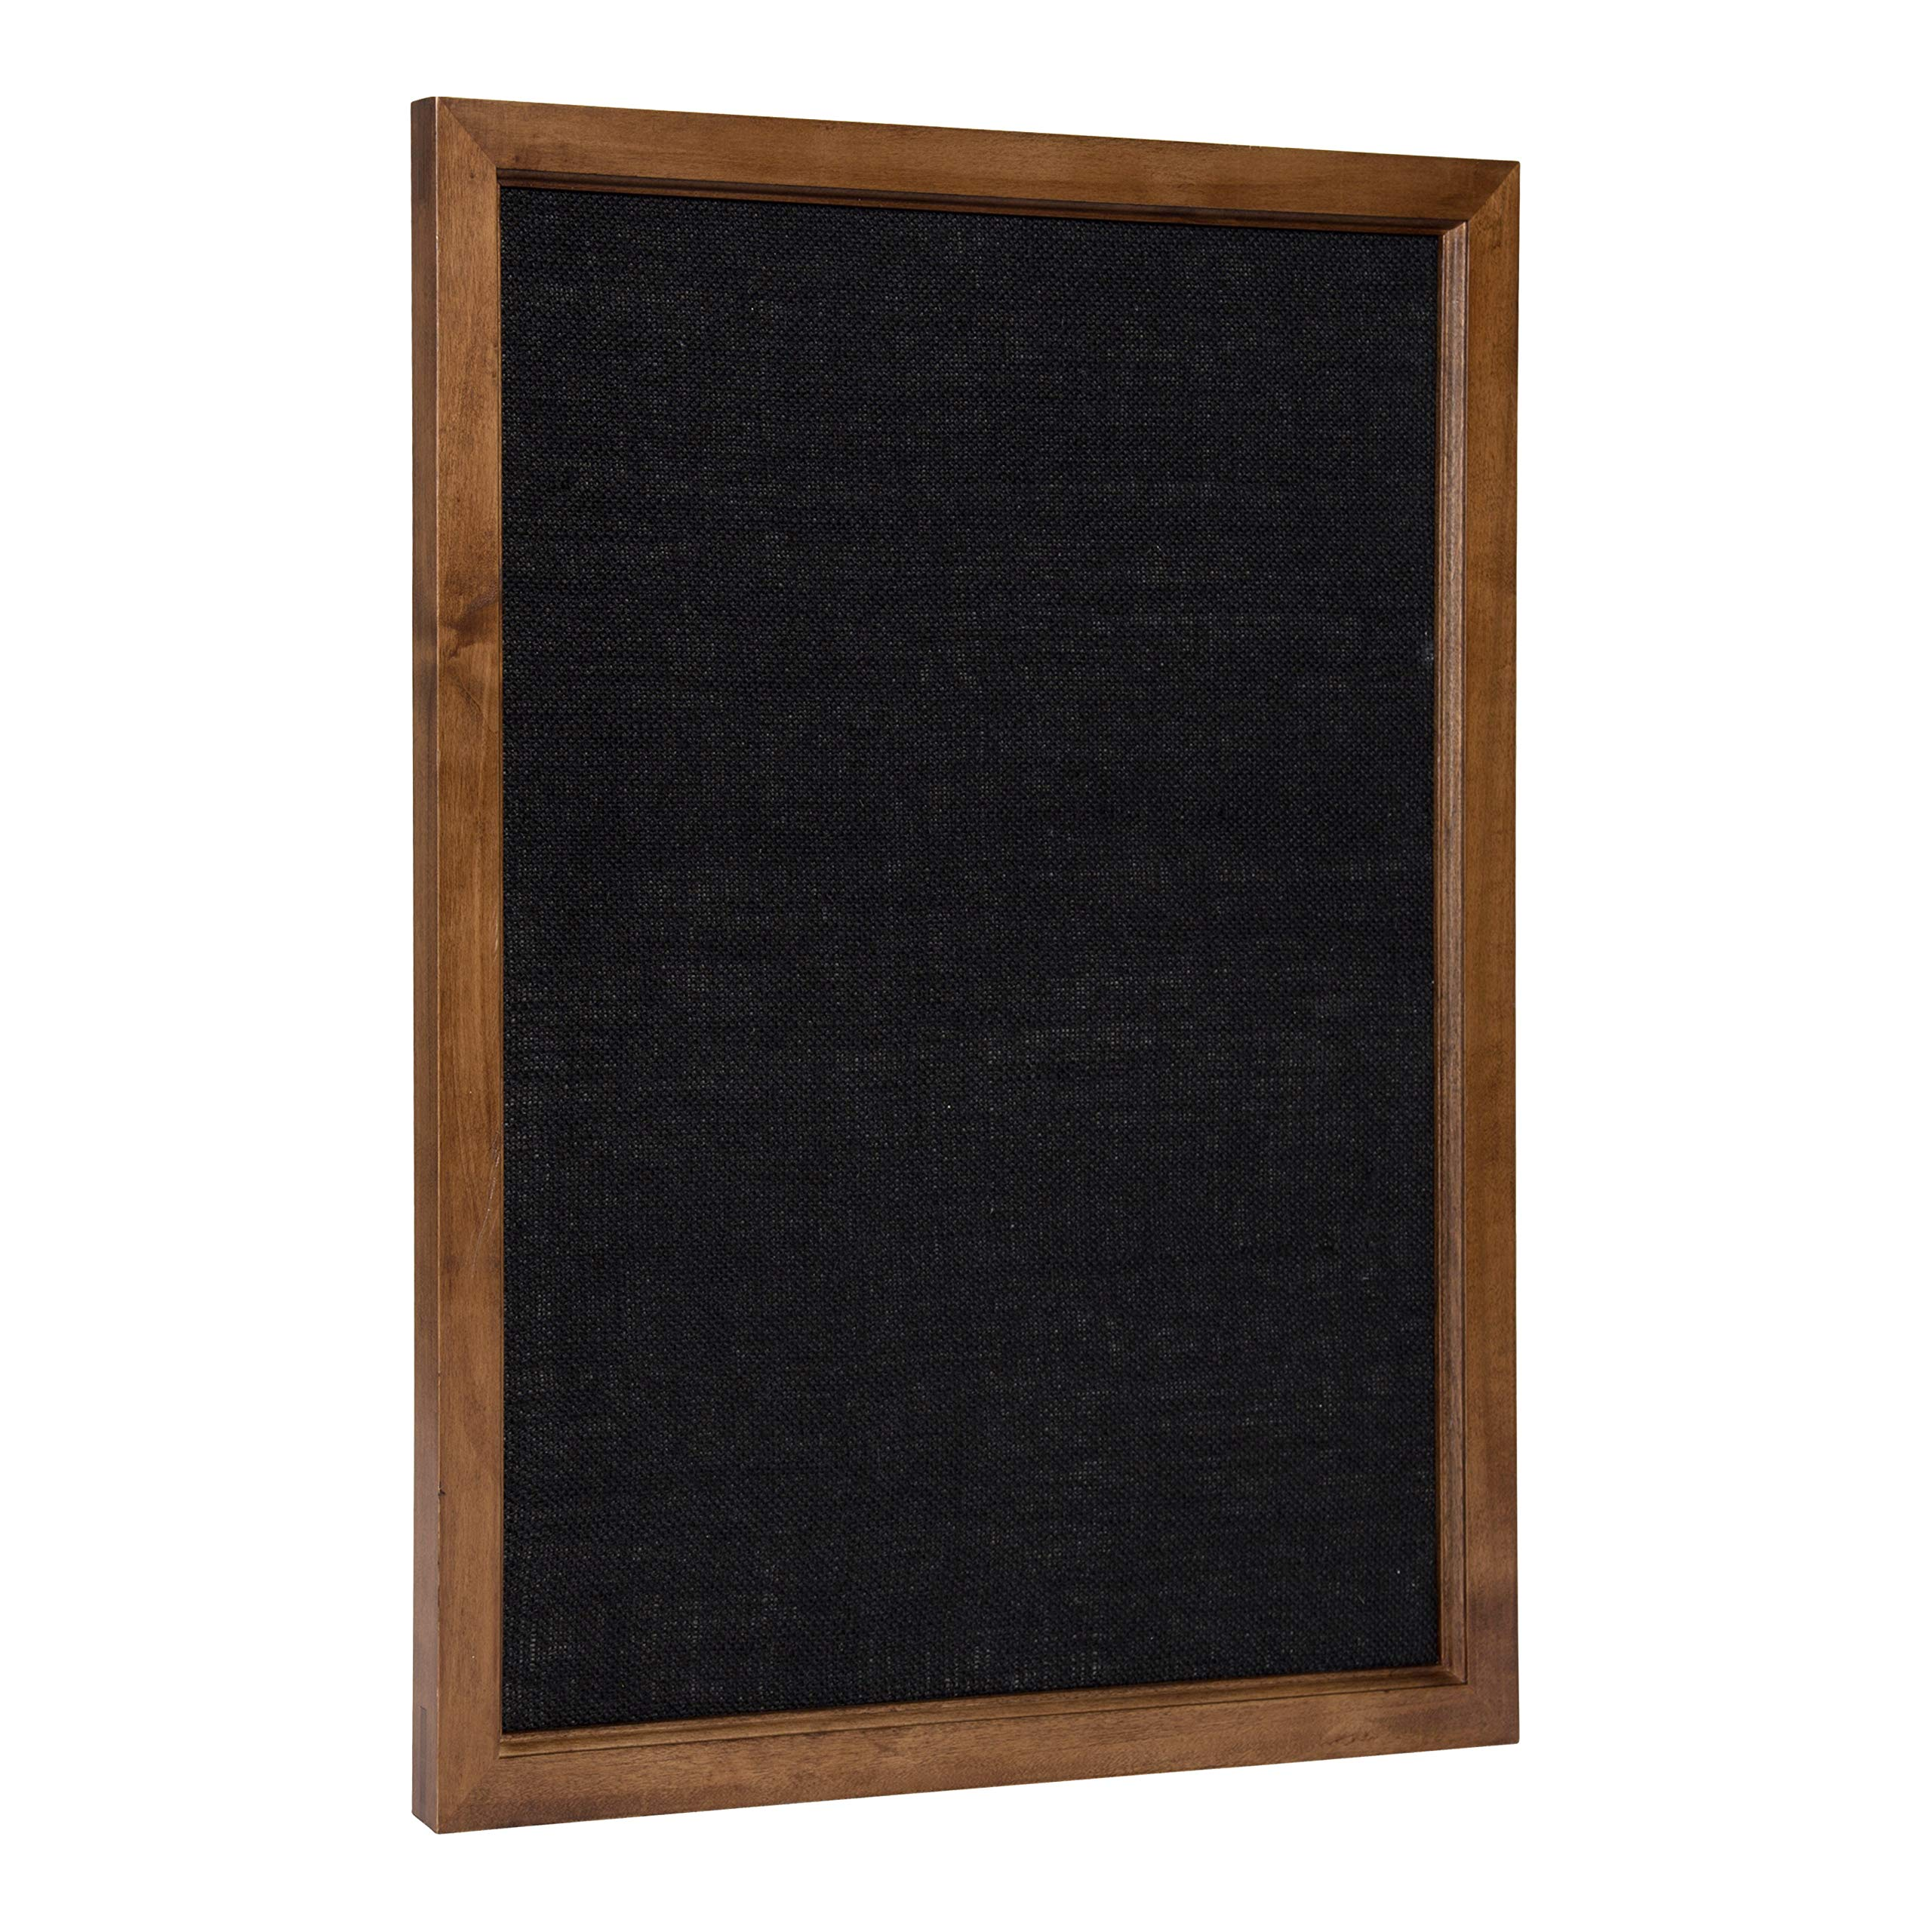 Kate and Laurel Hogan Transitional Wood Framed Fabric Pinboard, 20 x 26 Inches, Walnut Finish and Black Linen by Kate and Laurel